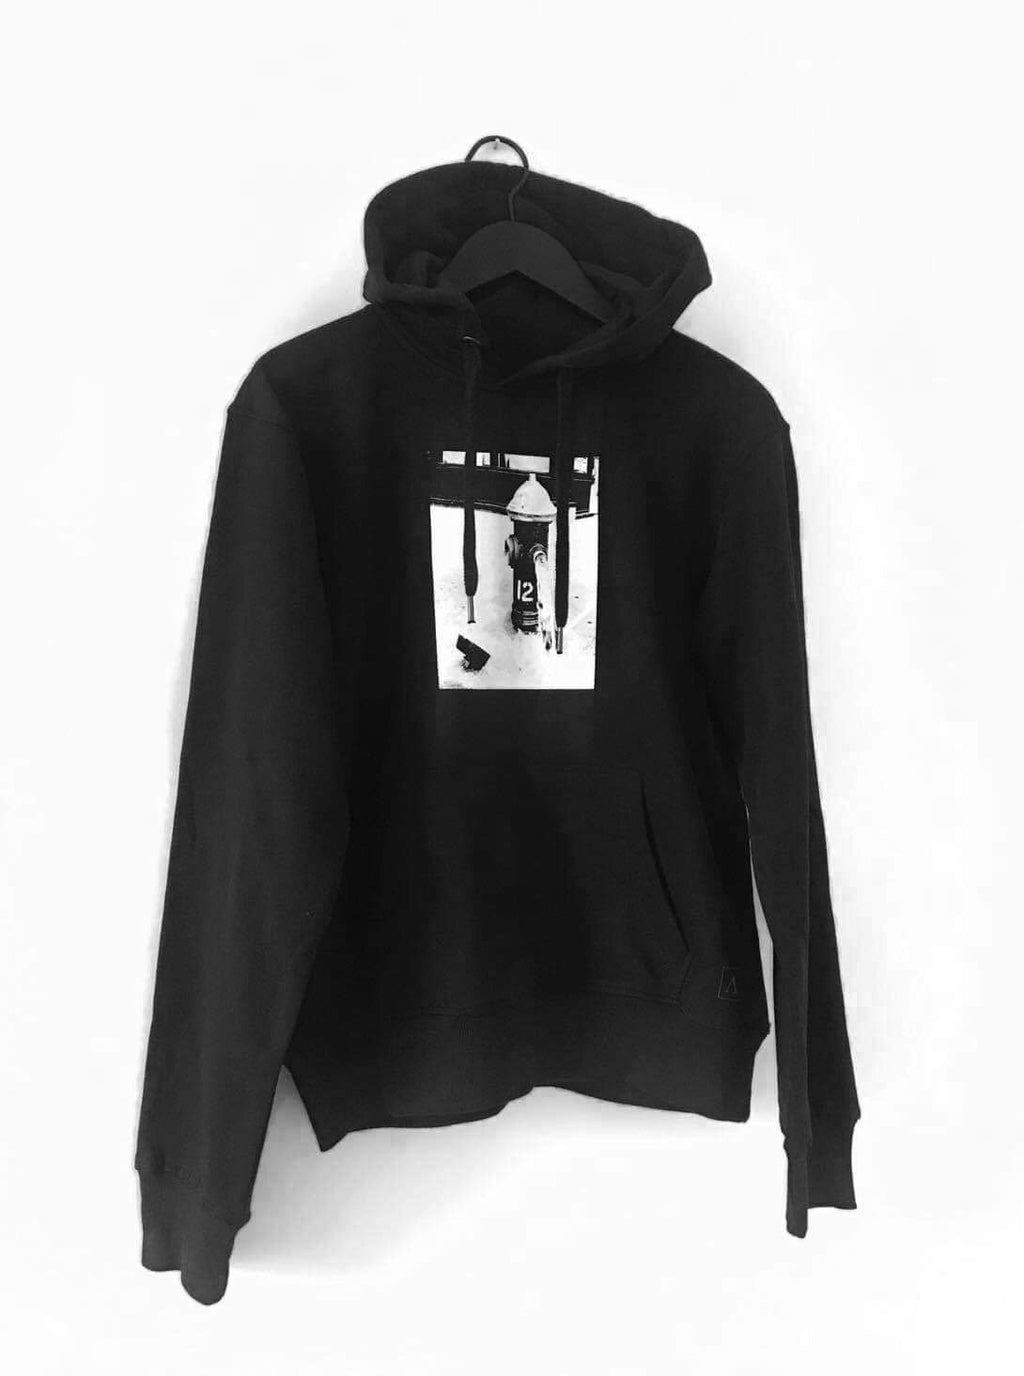 NEW! STORY NO. 9 FIRE HYDRANT 12 /Hoodie - Women